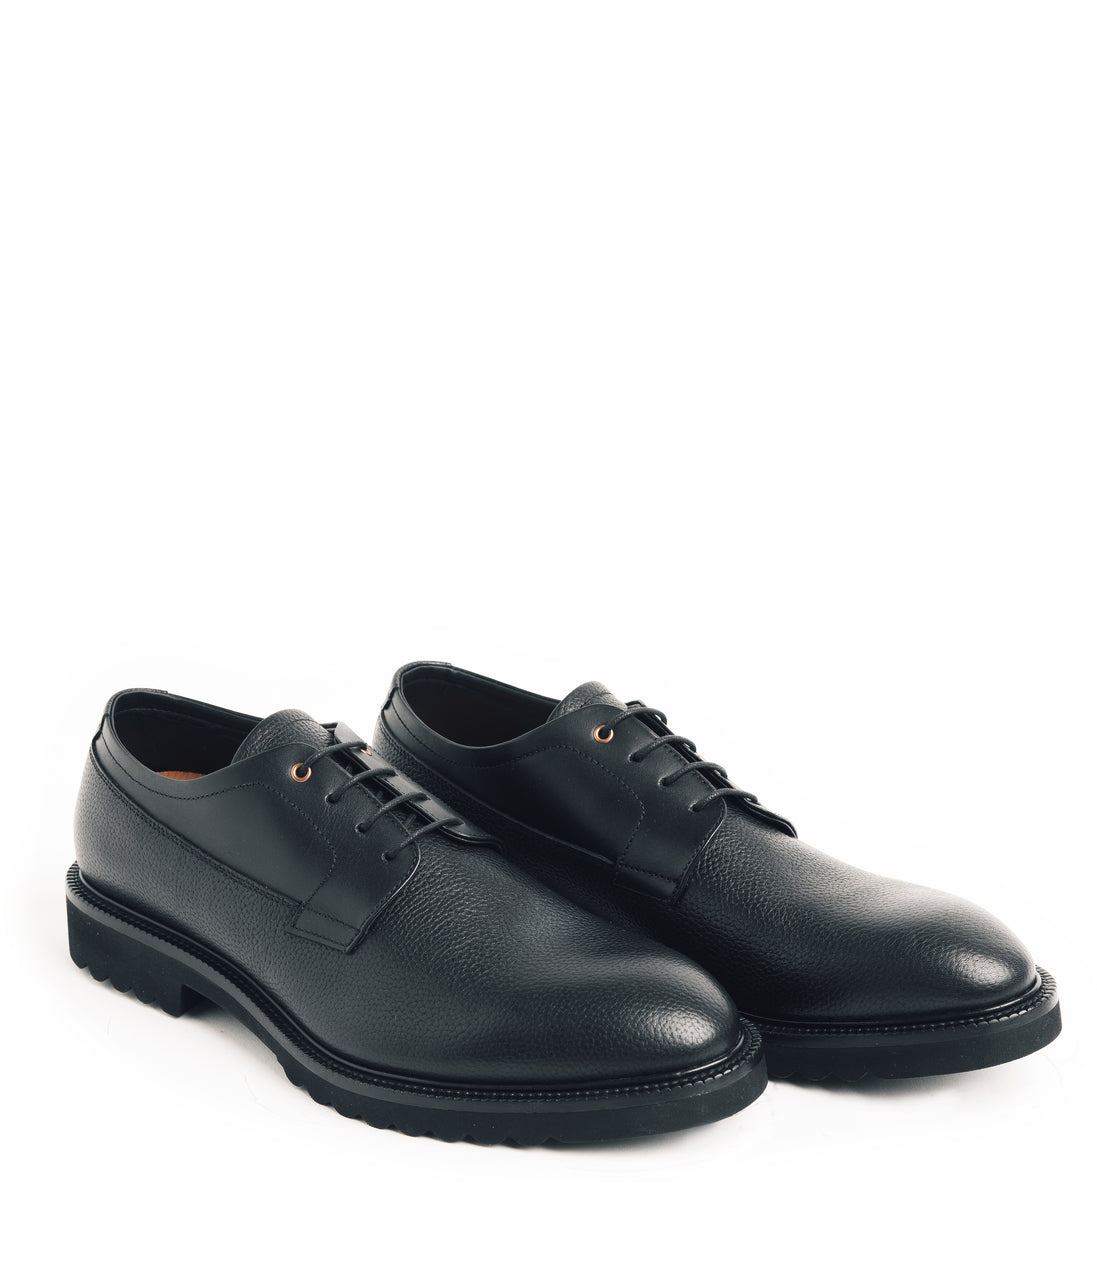 Derby MicroLight Pebble Grain Shoe - Black - Good Man Brand - Derby MicroLight Pebble Grain Shoe - Black - Footwear - Good Man Brand